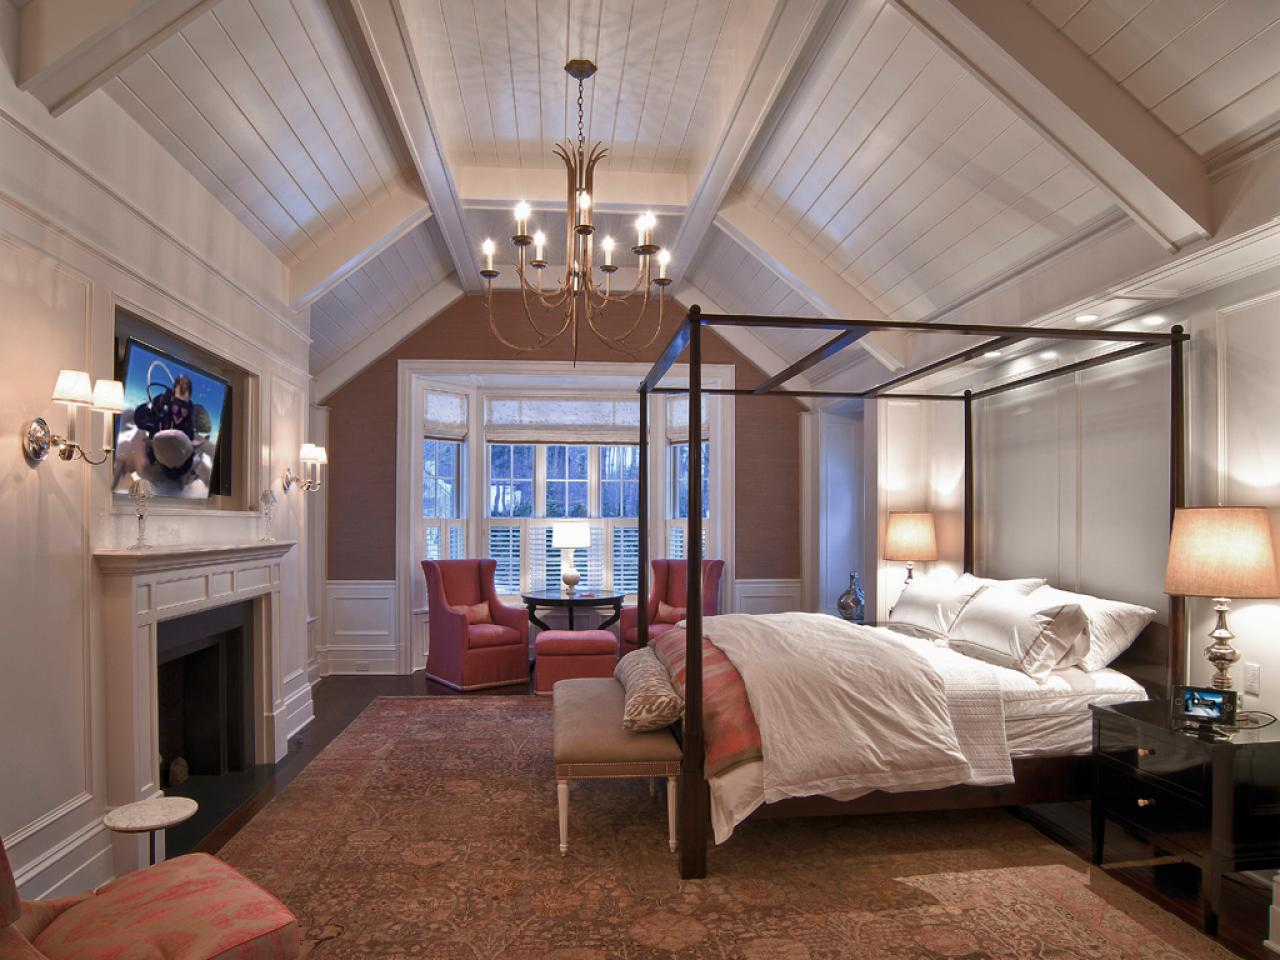 bedroom lighting styles pictures design ideas hgtv 16987 | 1405412080164